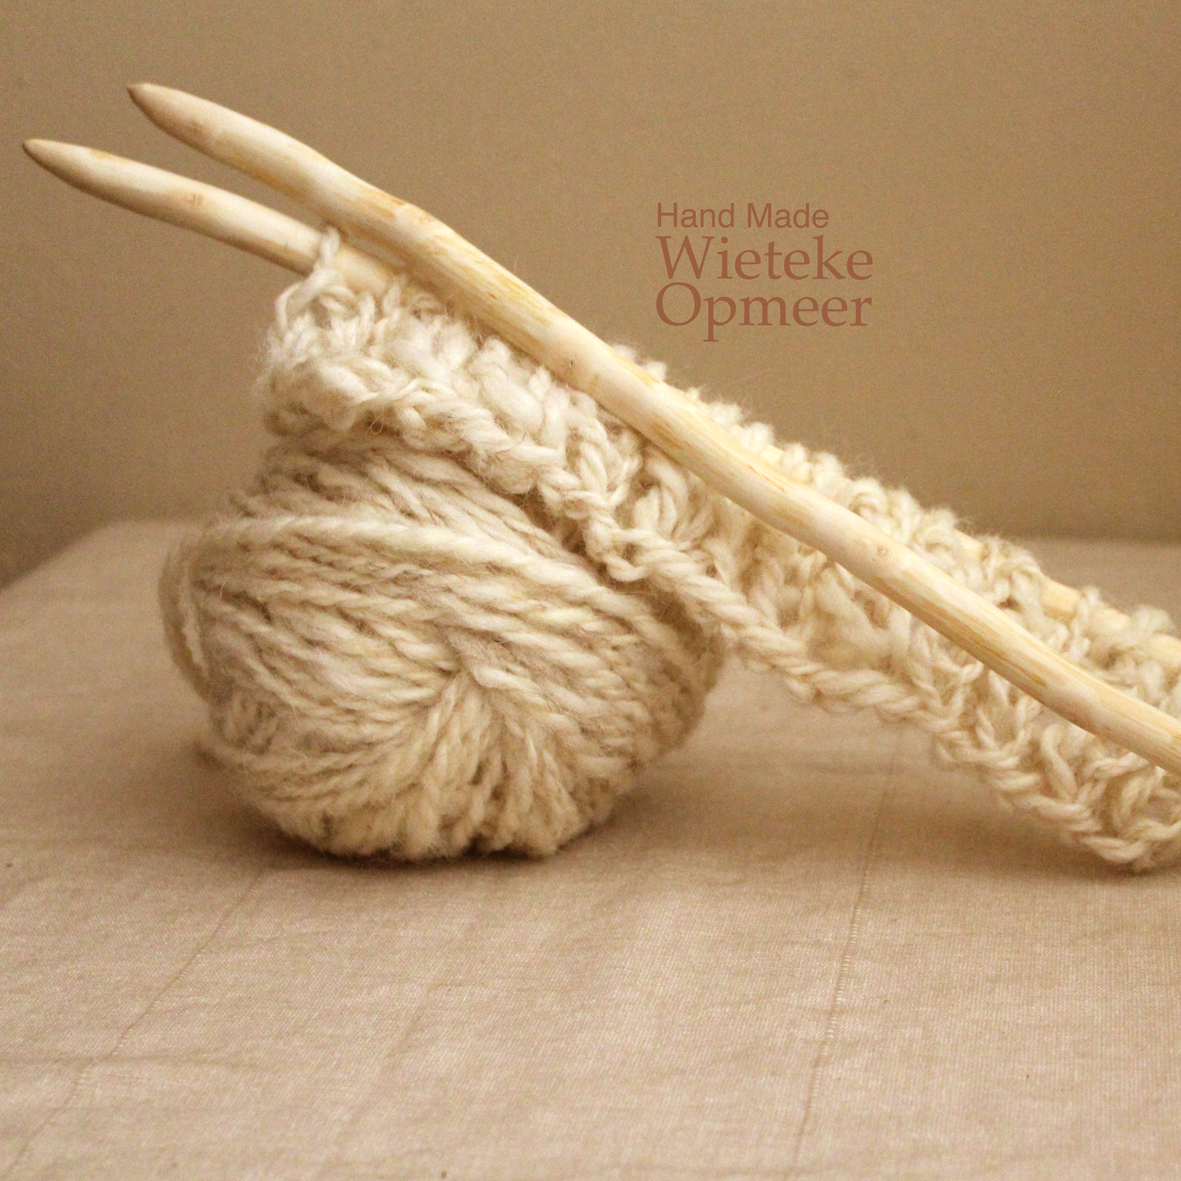 organically shaped wooden knitting needles hand carved from pruning wood.